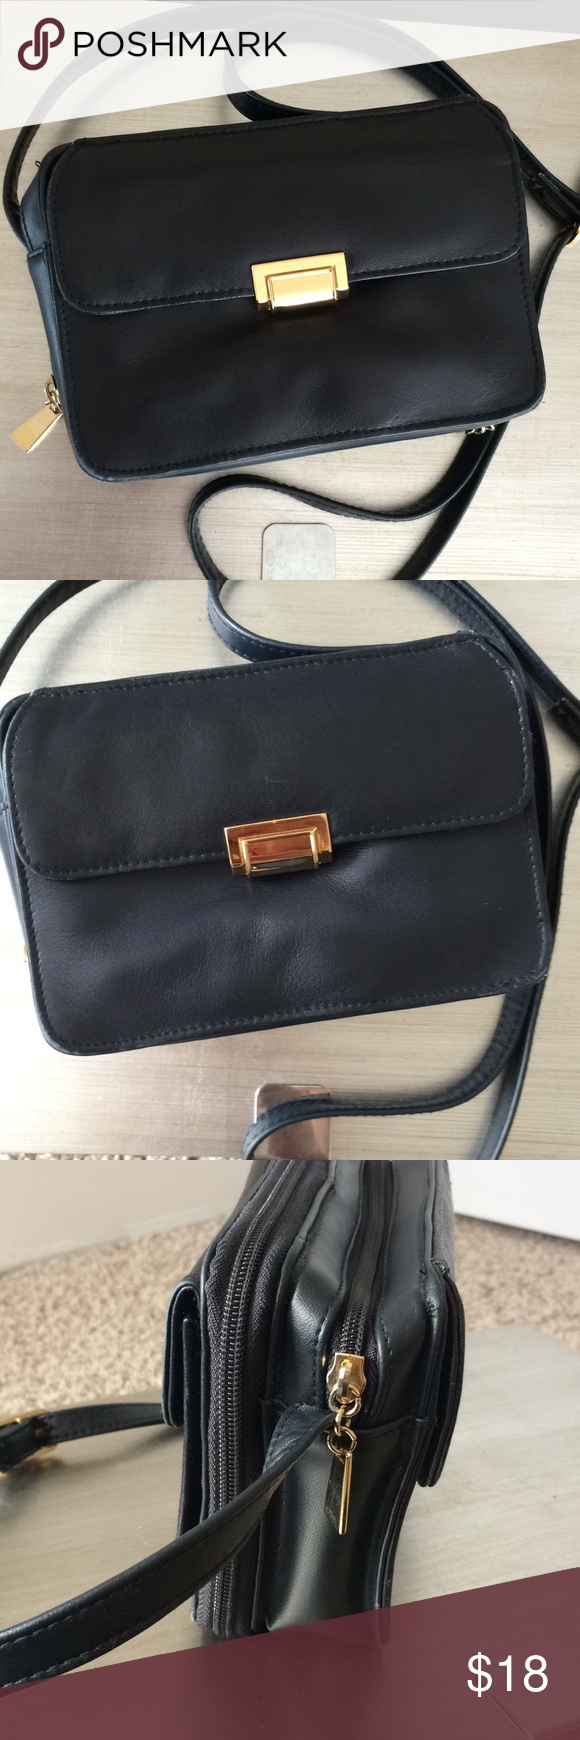 "????80s Leather Crossbody Camera Purse Featuring a cute 80s camera purse crossbody in great condition:  - 7.25"" x 5"" x 2.75""; strap drop (adjustable) 23"" to 27"" - quality black leather w/gold hardware; minimal signs of use (see back of purse in pics for few marks).              - plenty of storage organizers, including built in wallet/credit card holders and extra zip pockets.      Thank you for looking! Please ask any questions before buying. We want you to be happy with your item. Ba #camerapurse"